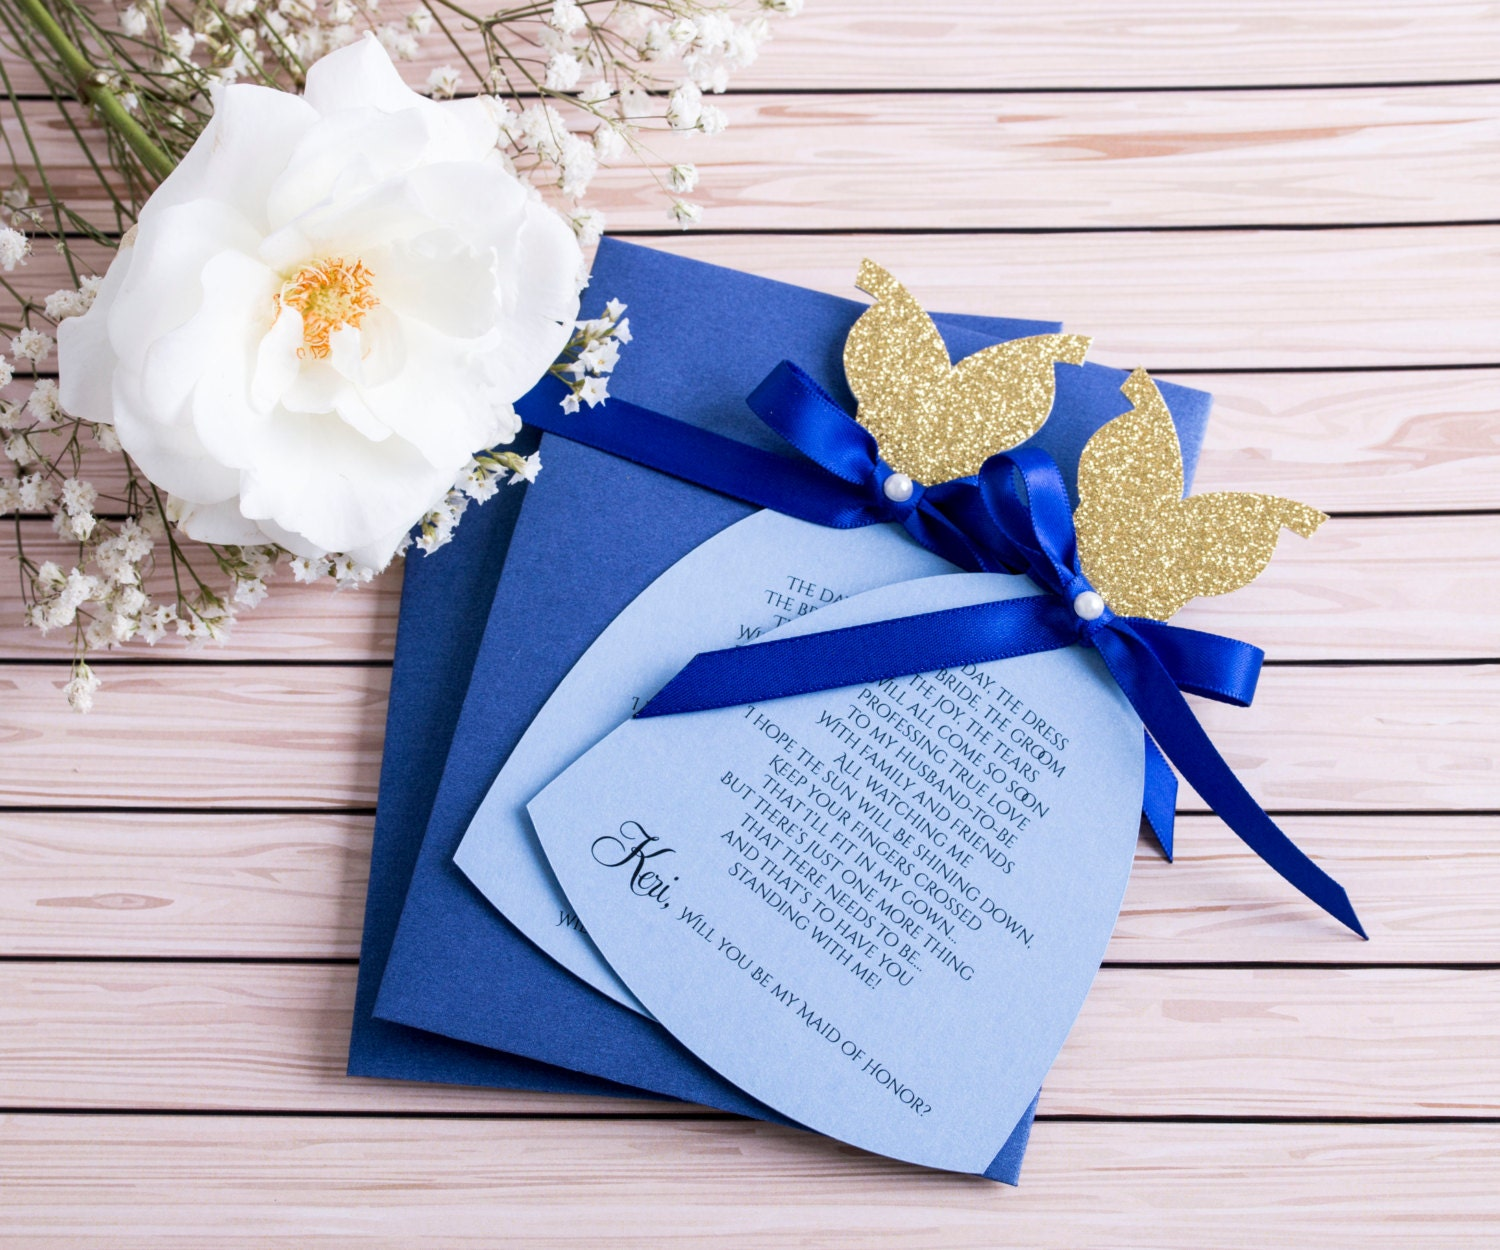 royal blue and gold bridesmaid royal wedding invitation Royal Blue and Gold Bridesmaid Invitation Will You be my Bridesmaid Asking Bridesmaid Wedding Invitation Proposal Maid of Honor card